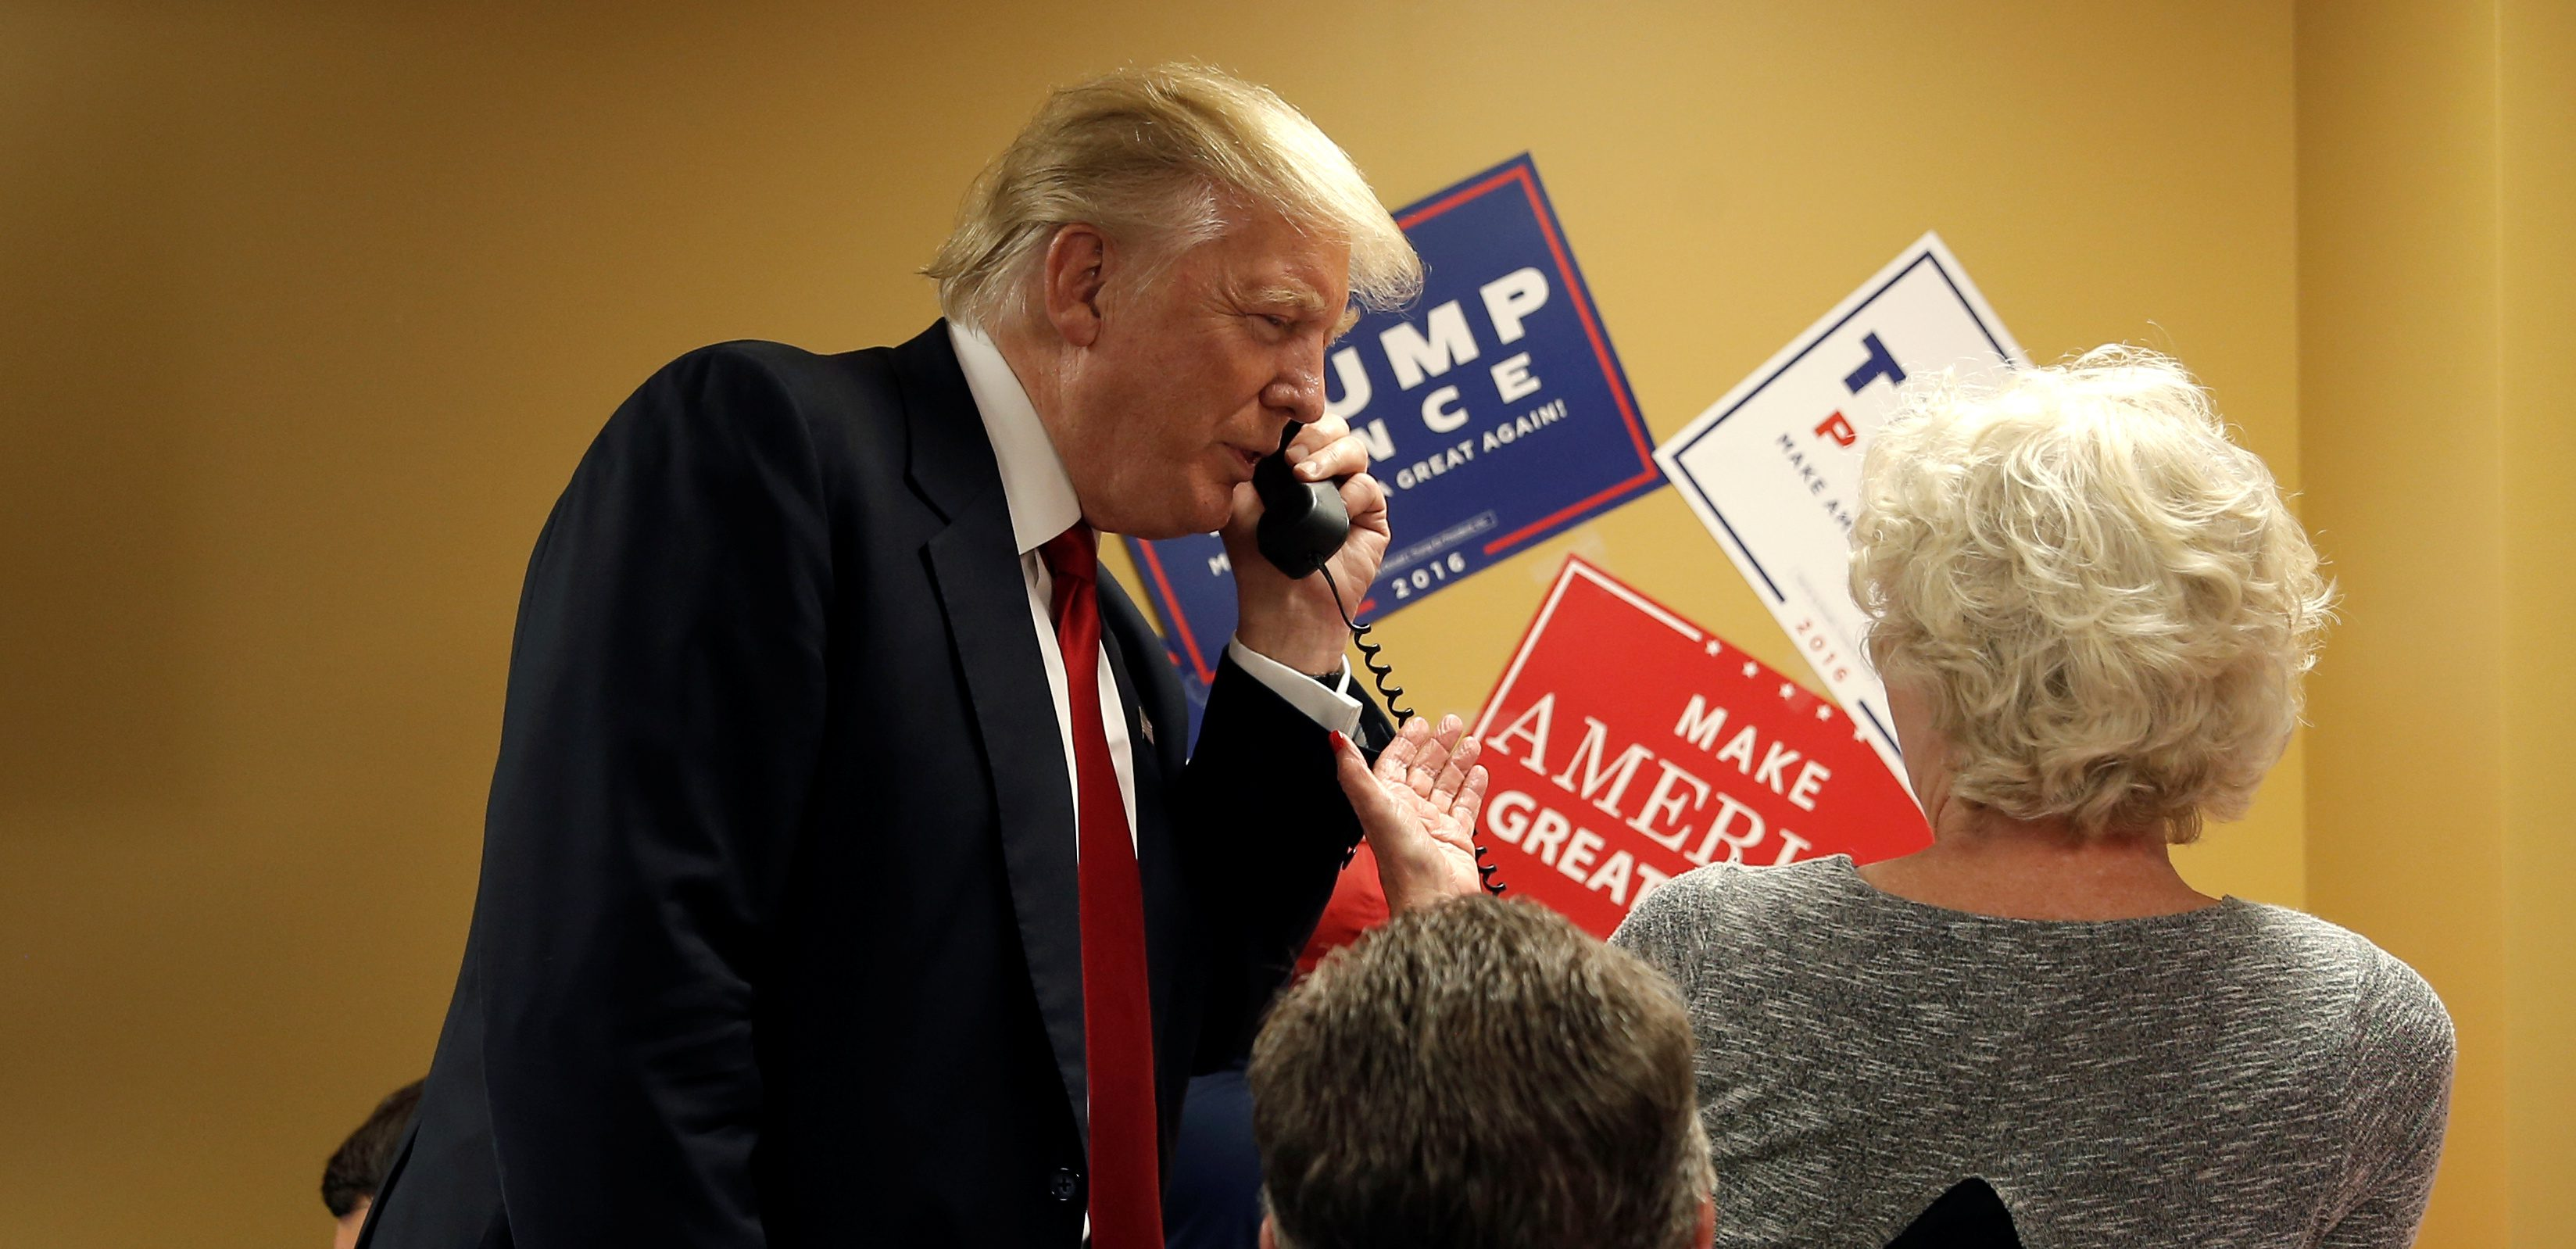 Republican presidential nominee Donald Trump talks on the phone during a visit to a Trump campaign call center in Asheville, North Carolina, U.S., September 12, 2016.  REUTERS/Mike Segar - RTSNFU8